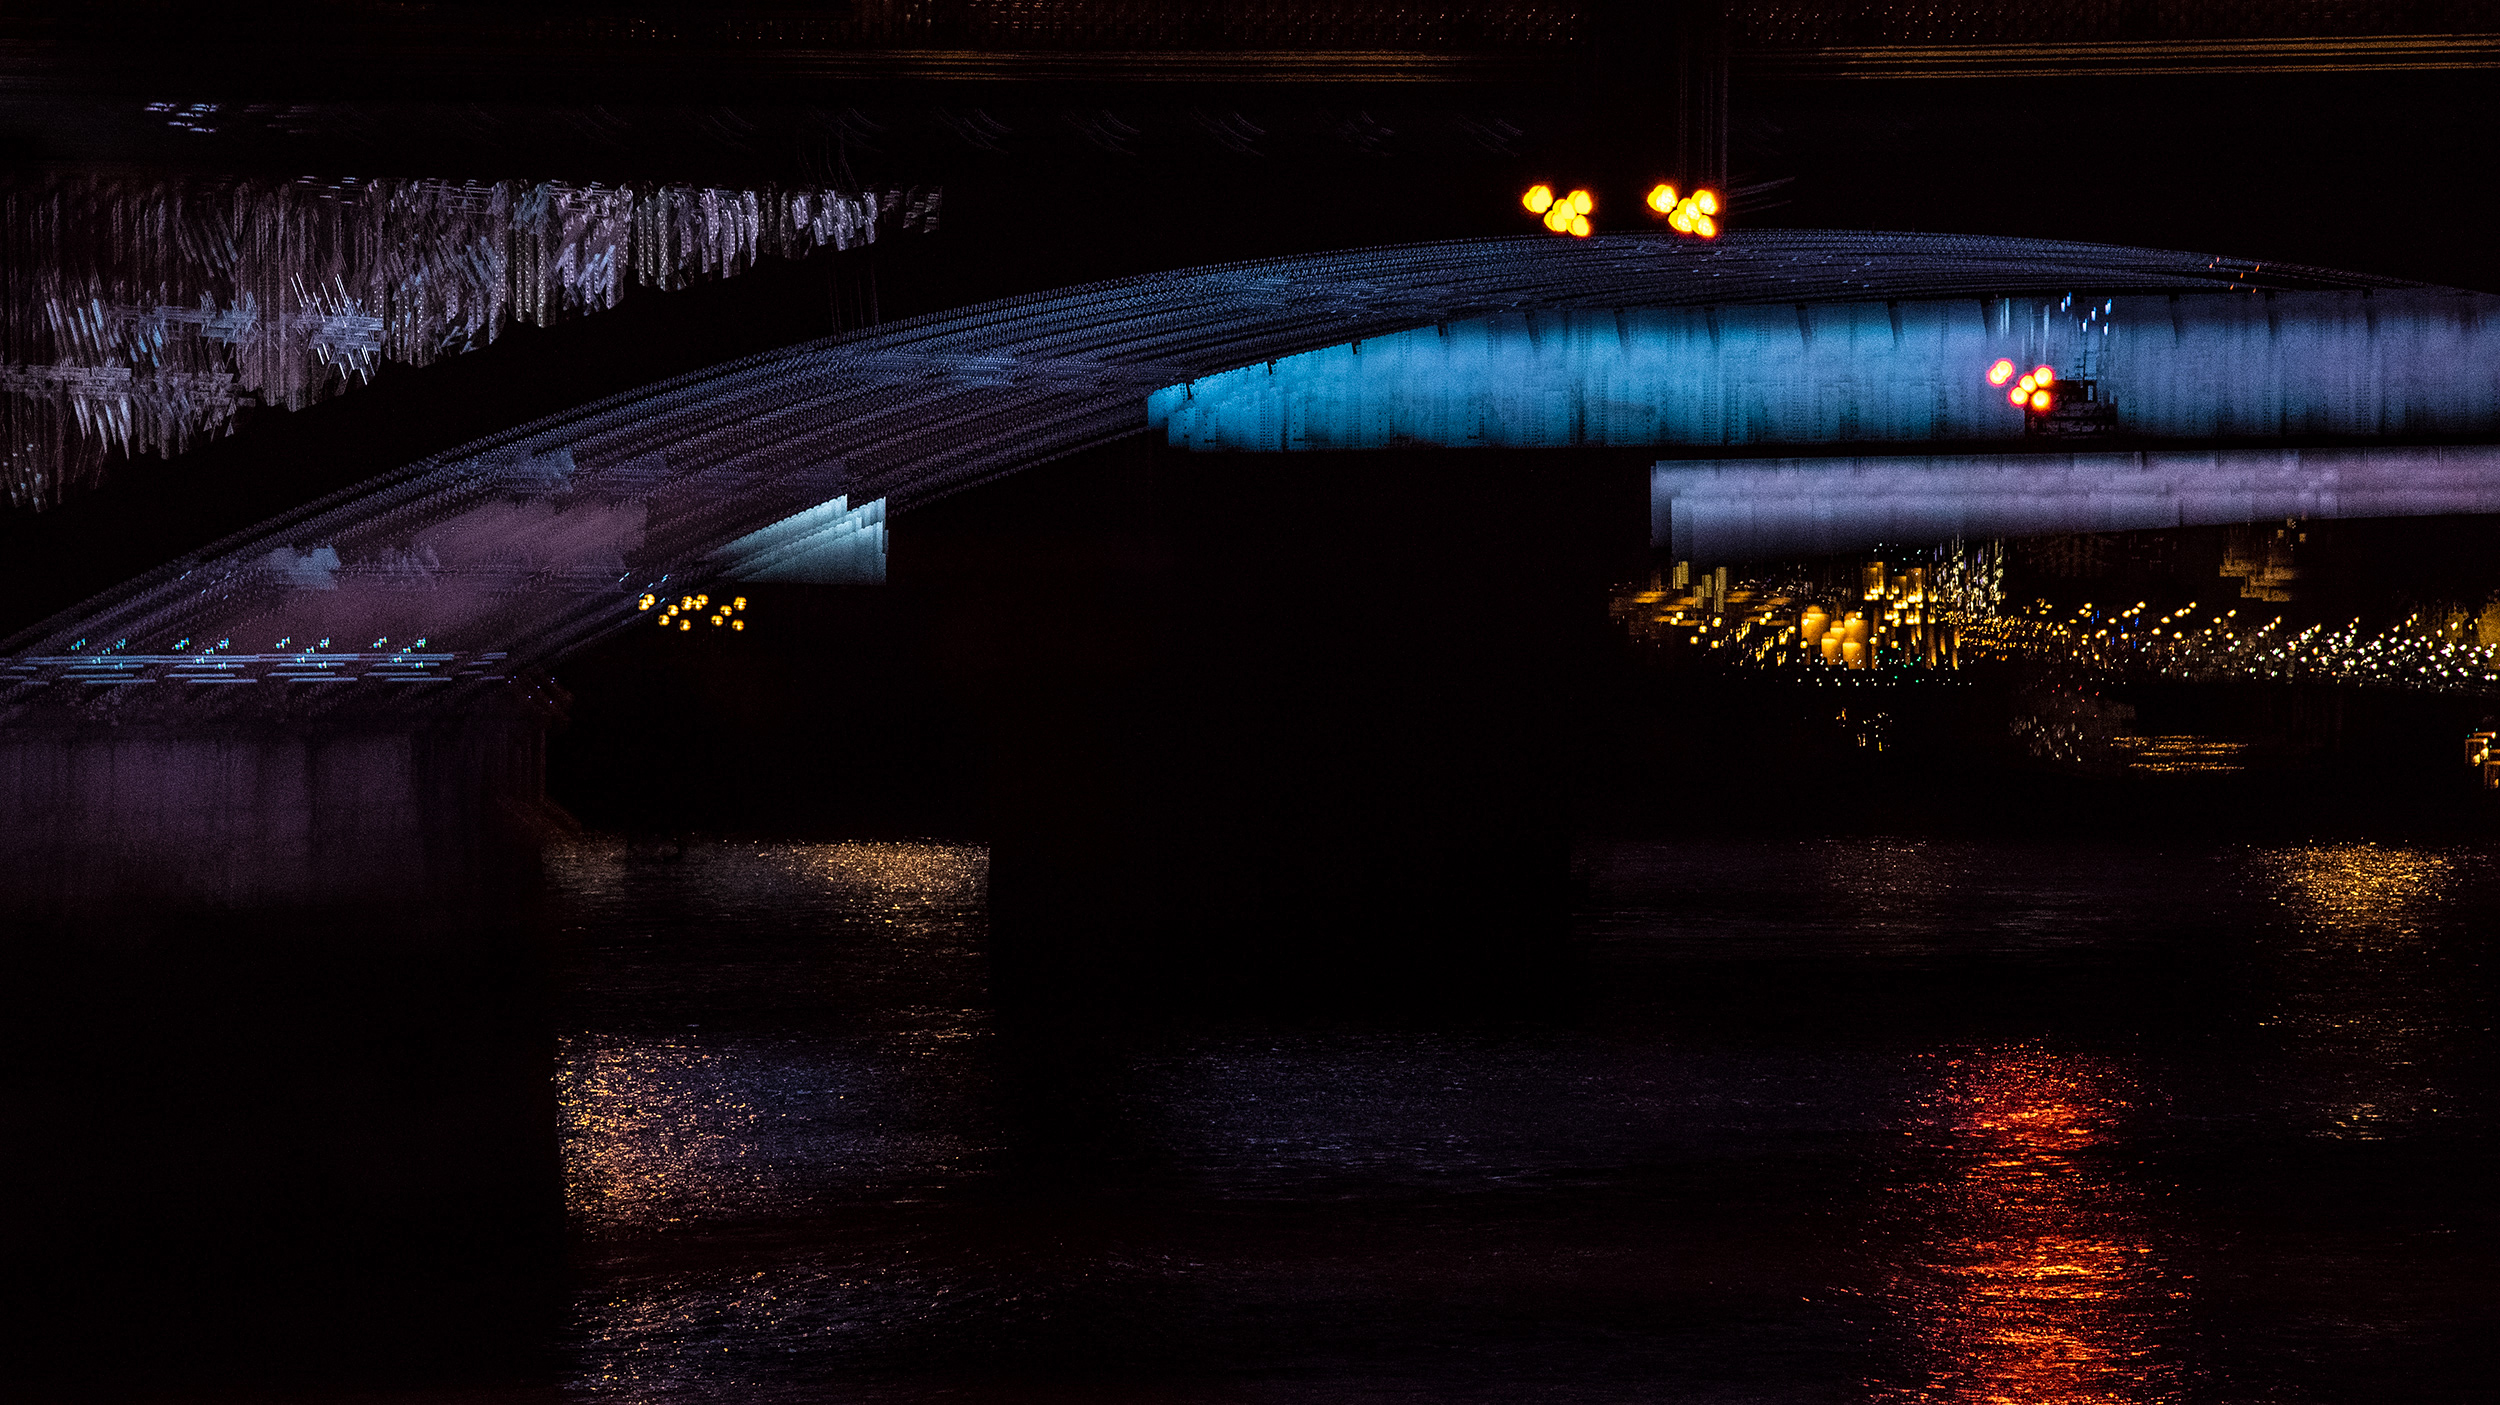 Illuminated River 10, London